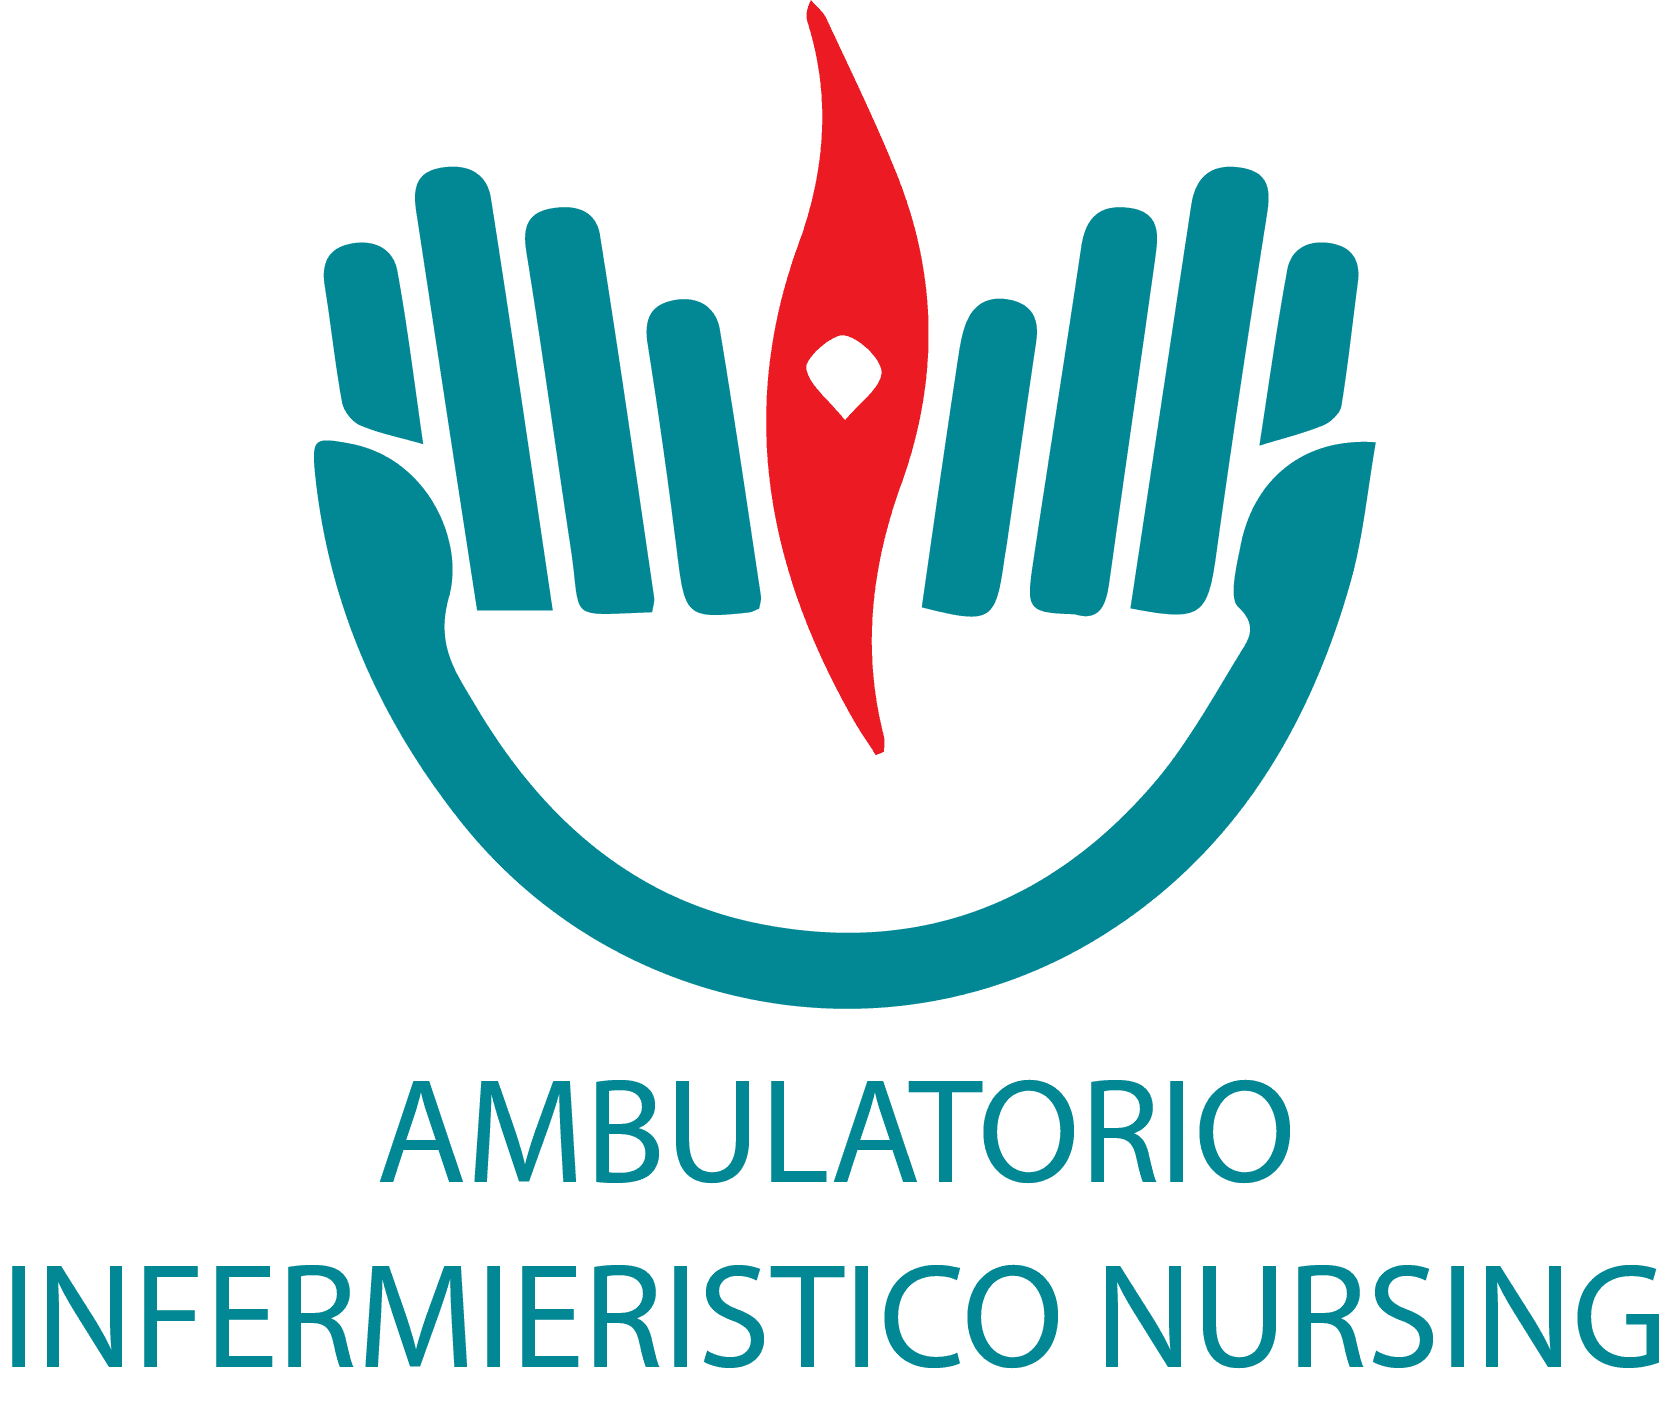 AMBULATORIO INFERMIERISTICO NURSING-Logo